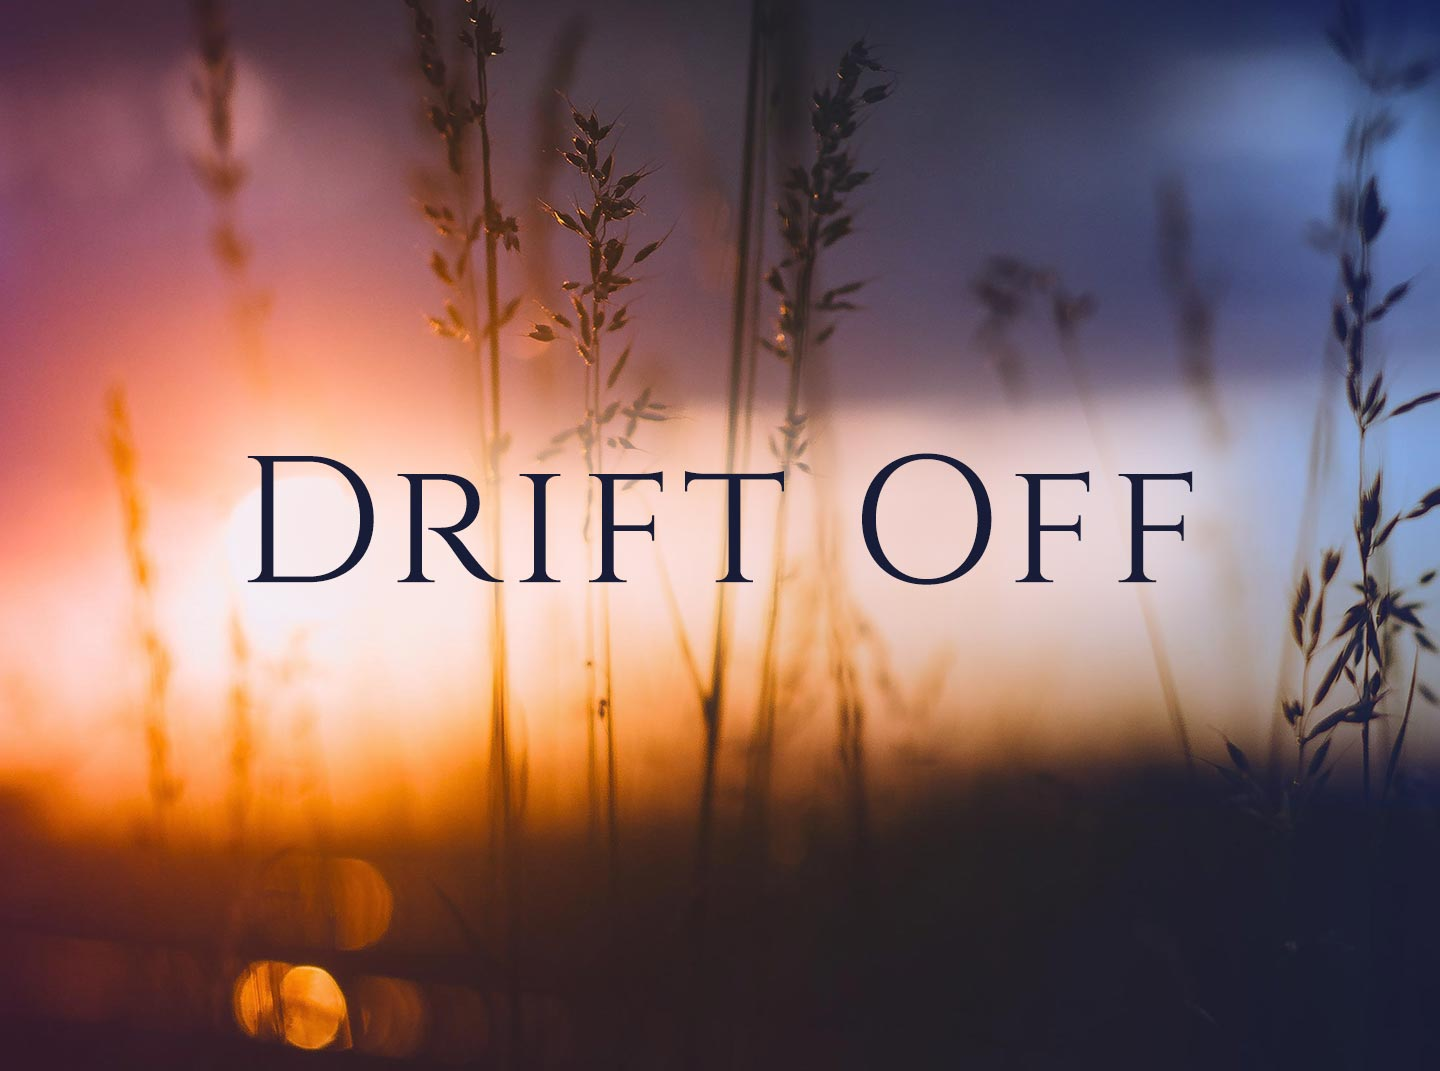 Drift Off